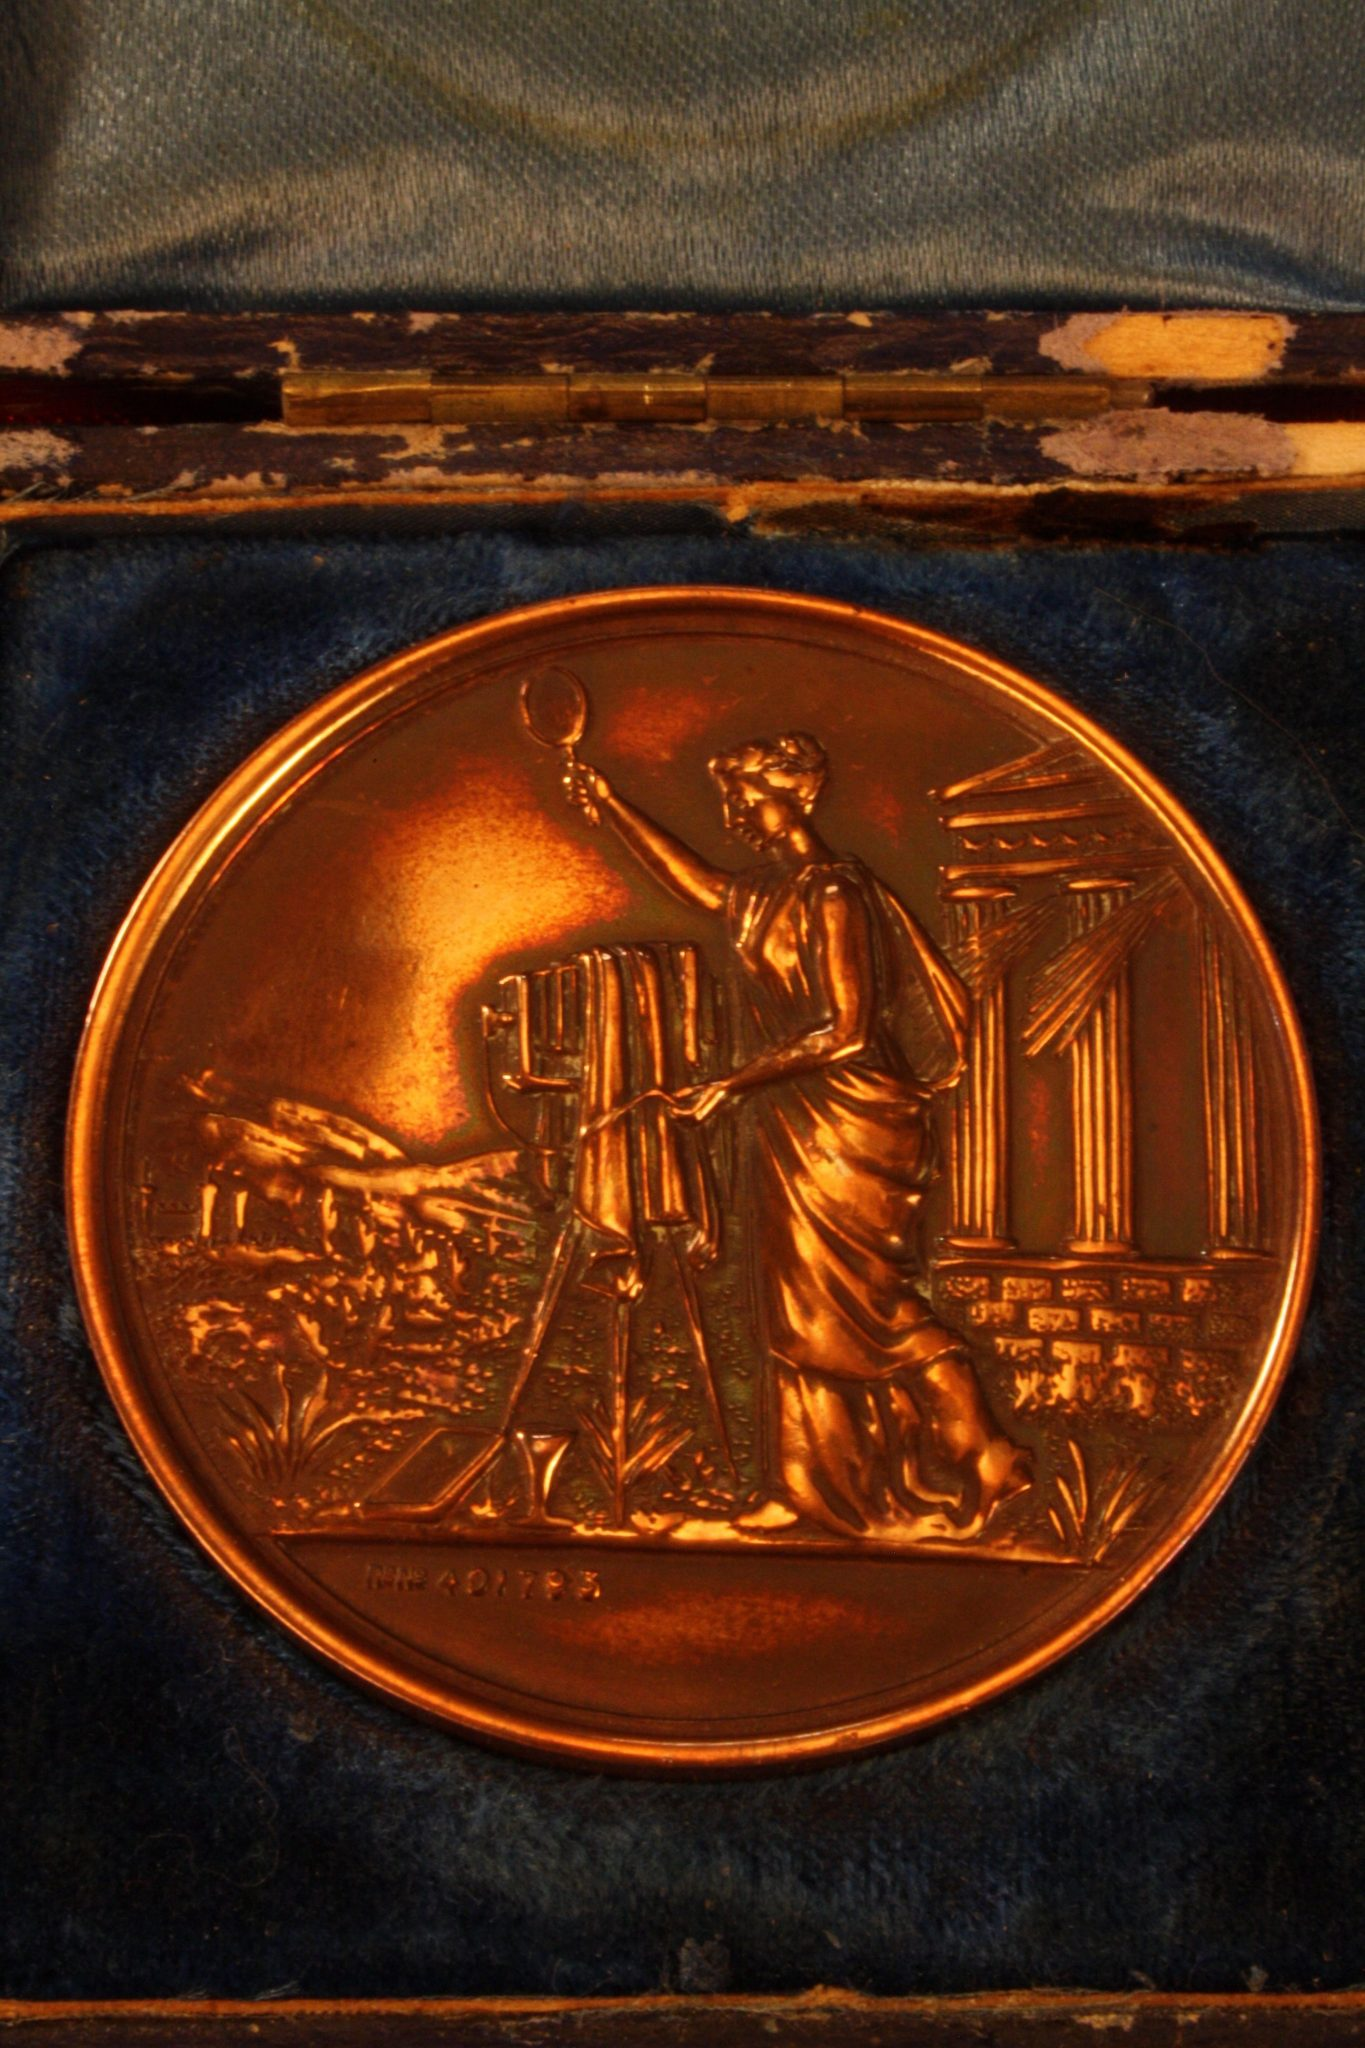 Image of Victorian Model Steam Engine Medals